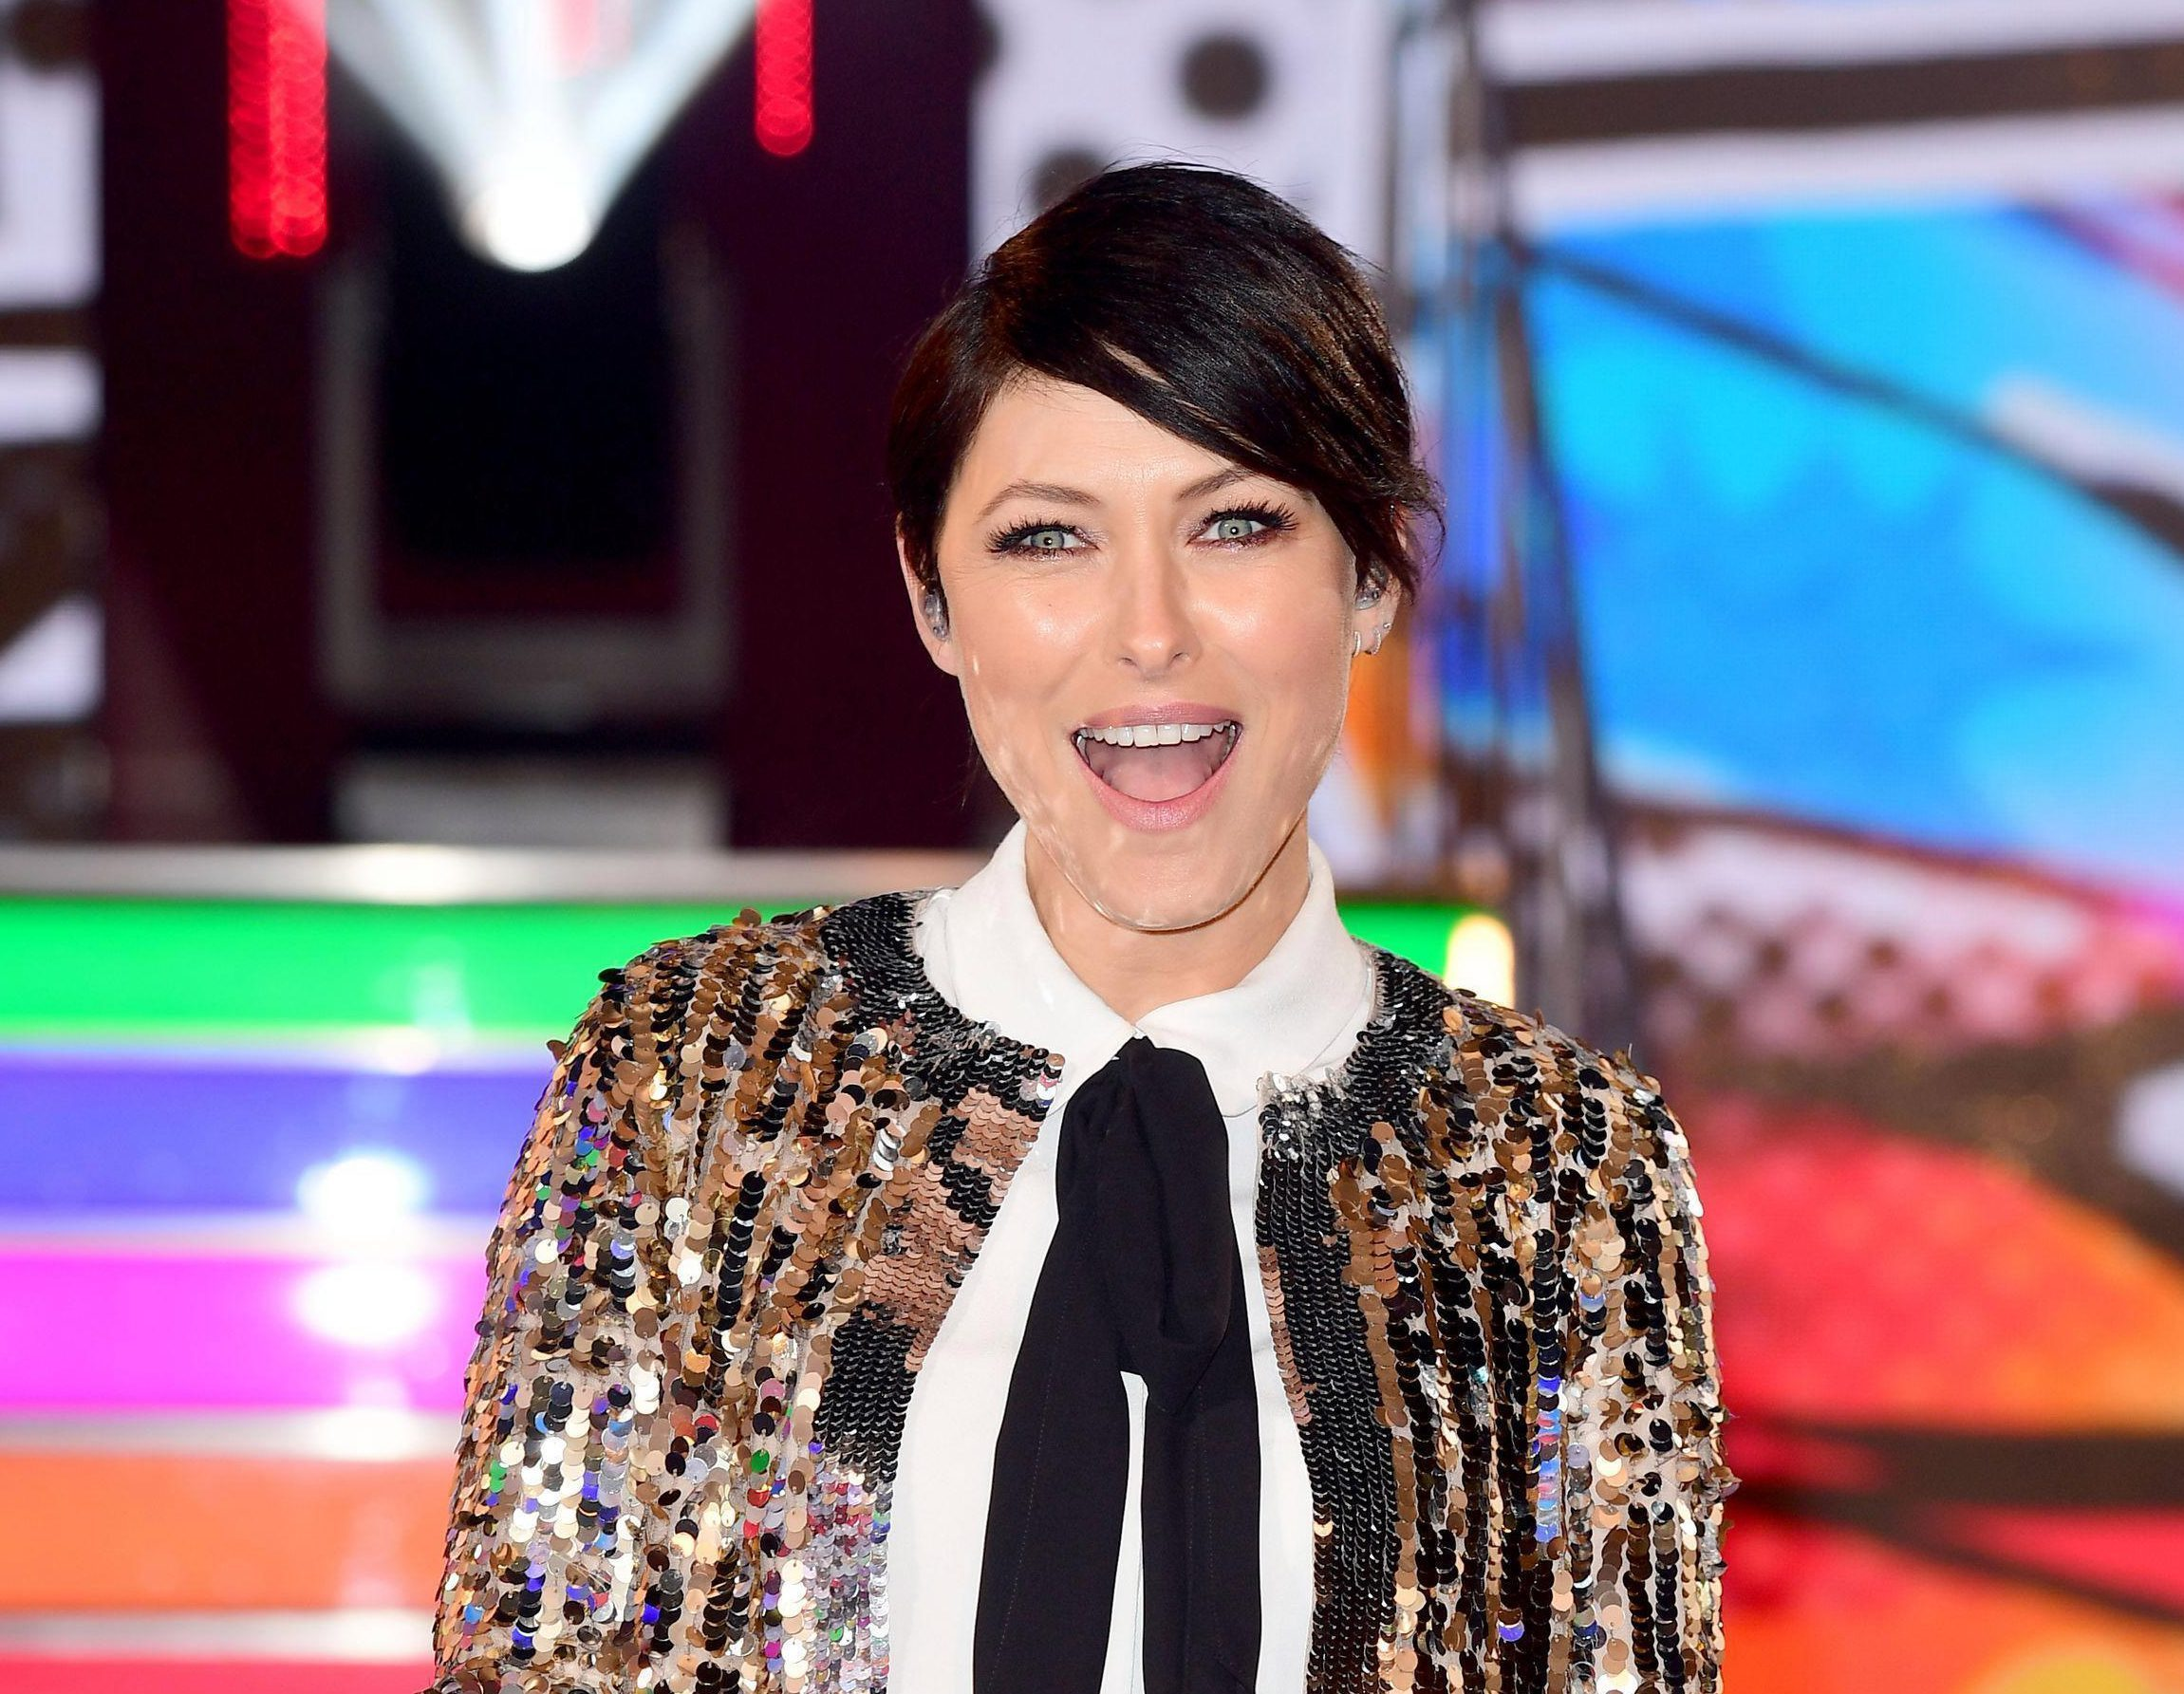 Emma Willis – 5 facts about the Celebrity Big Brother 2018 and The Voice presenter